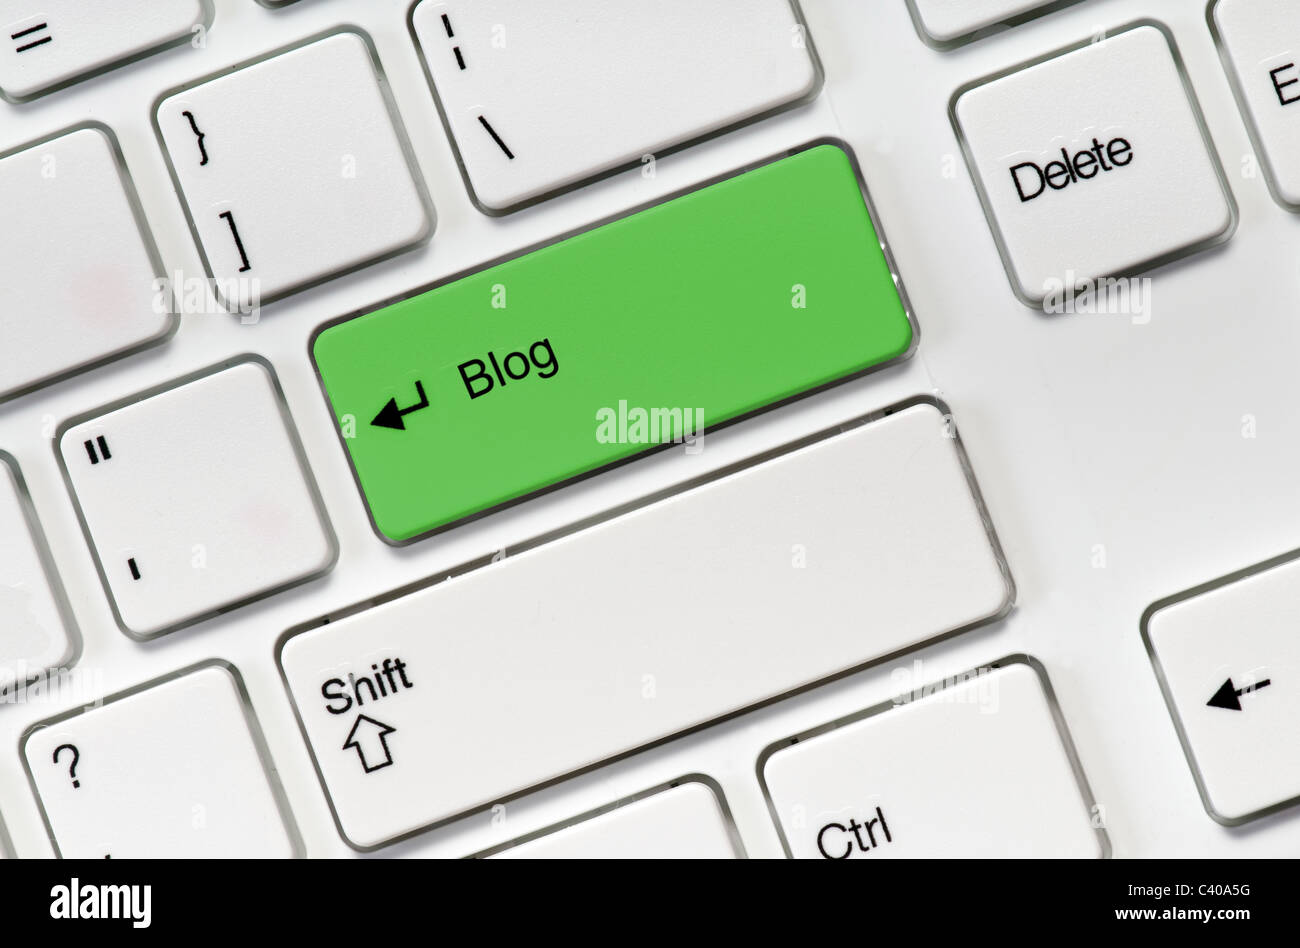 White keyboard buttons and green key blog - Stock Image